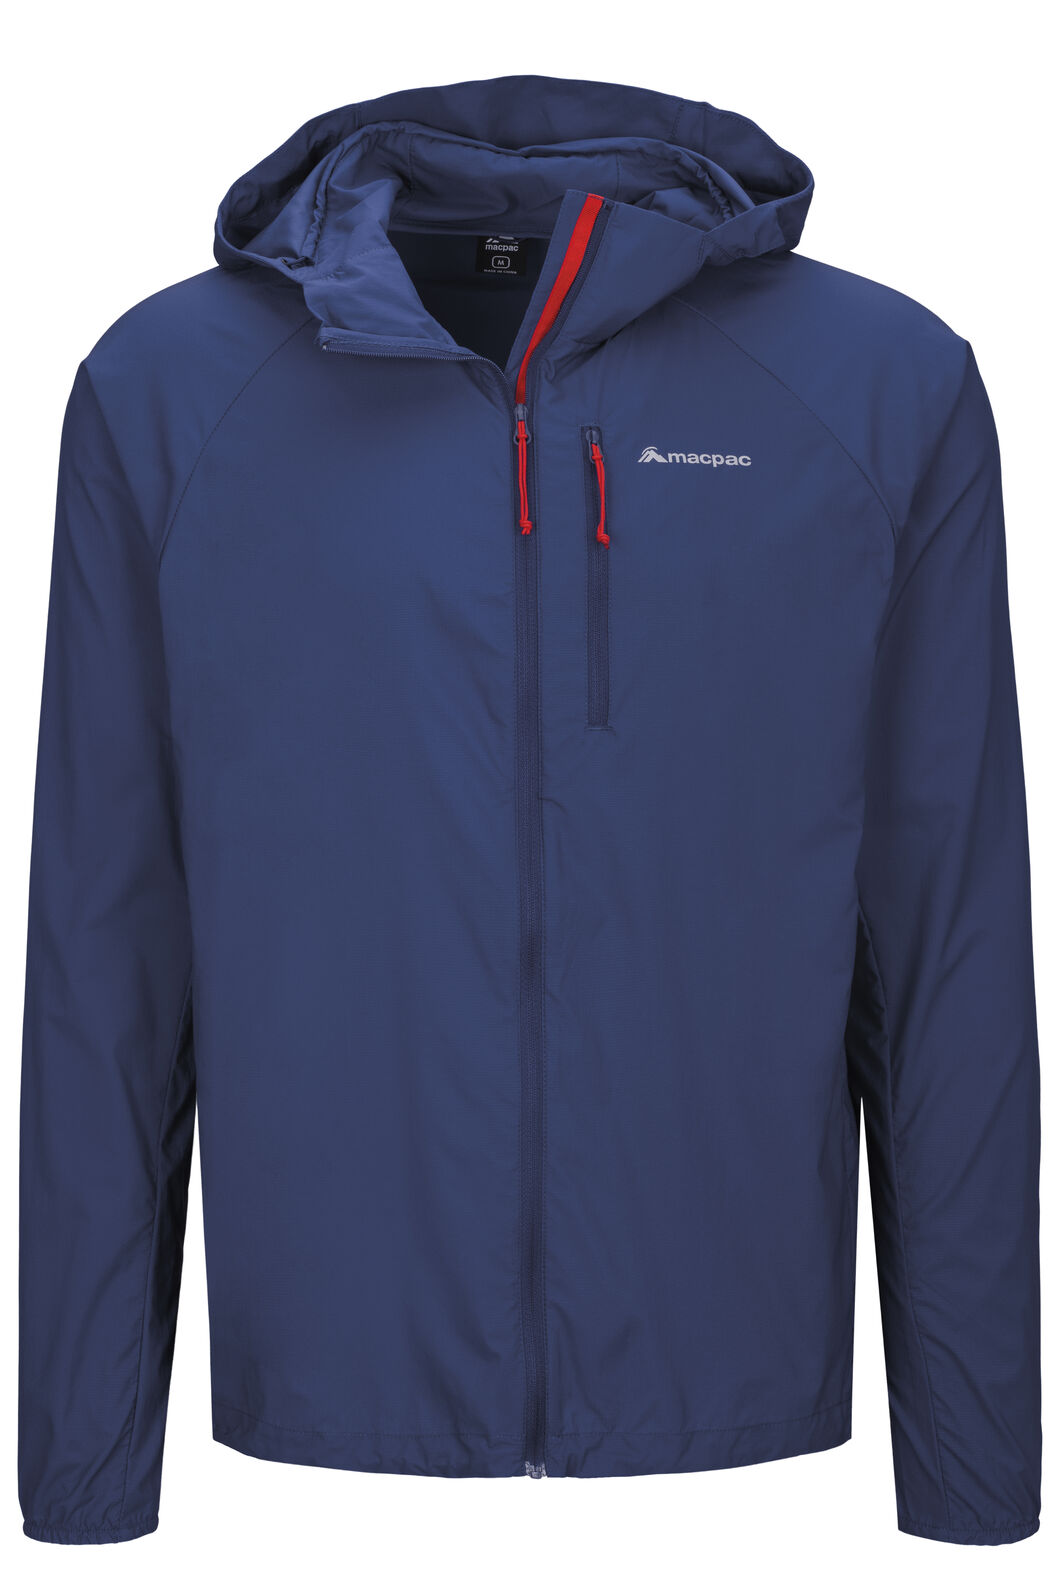 Macpac Whitcombe Pertex® Windbreaker — Men's, Blueprint, hi-res